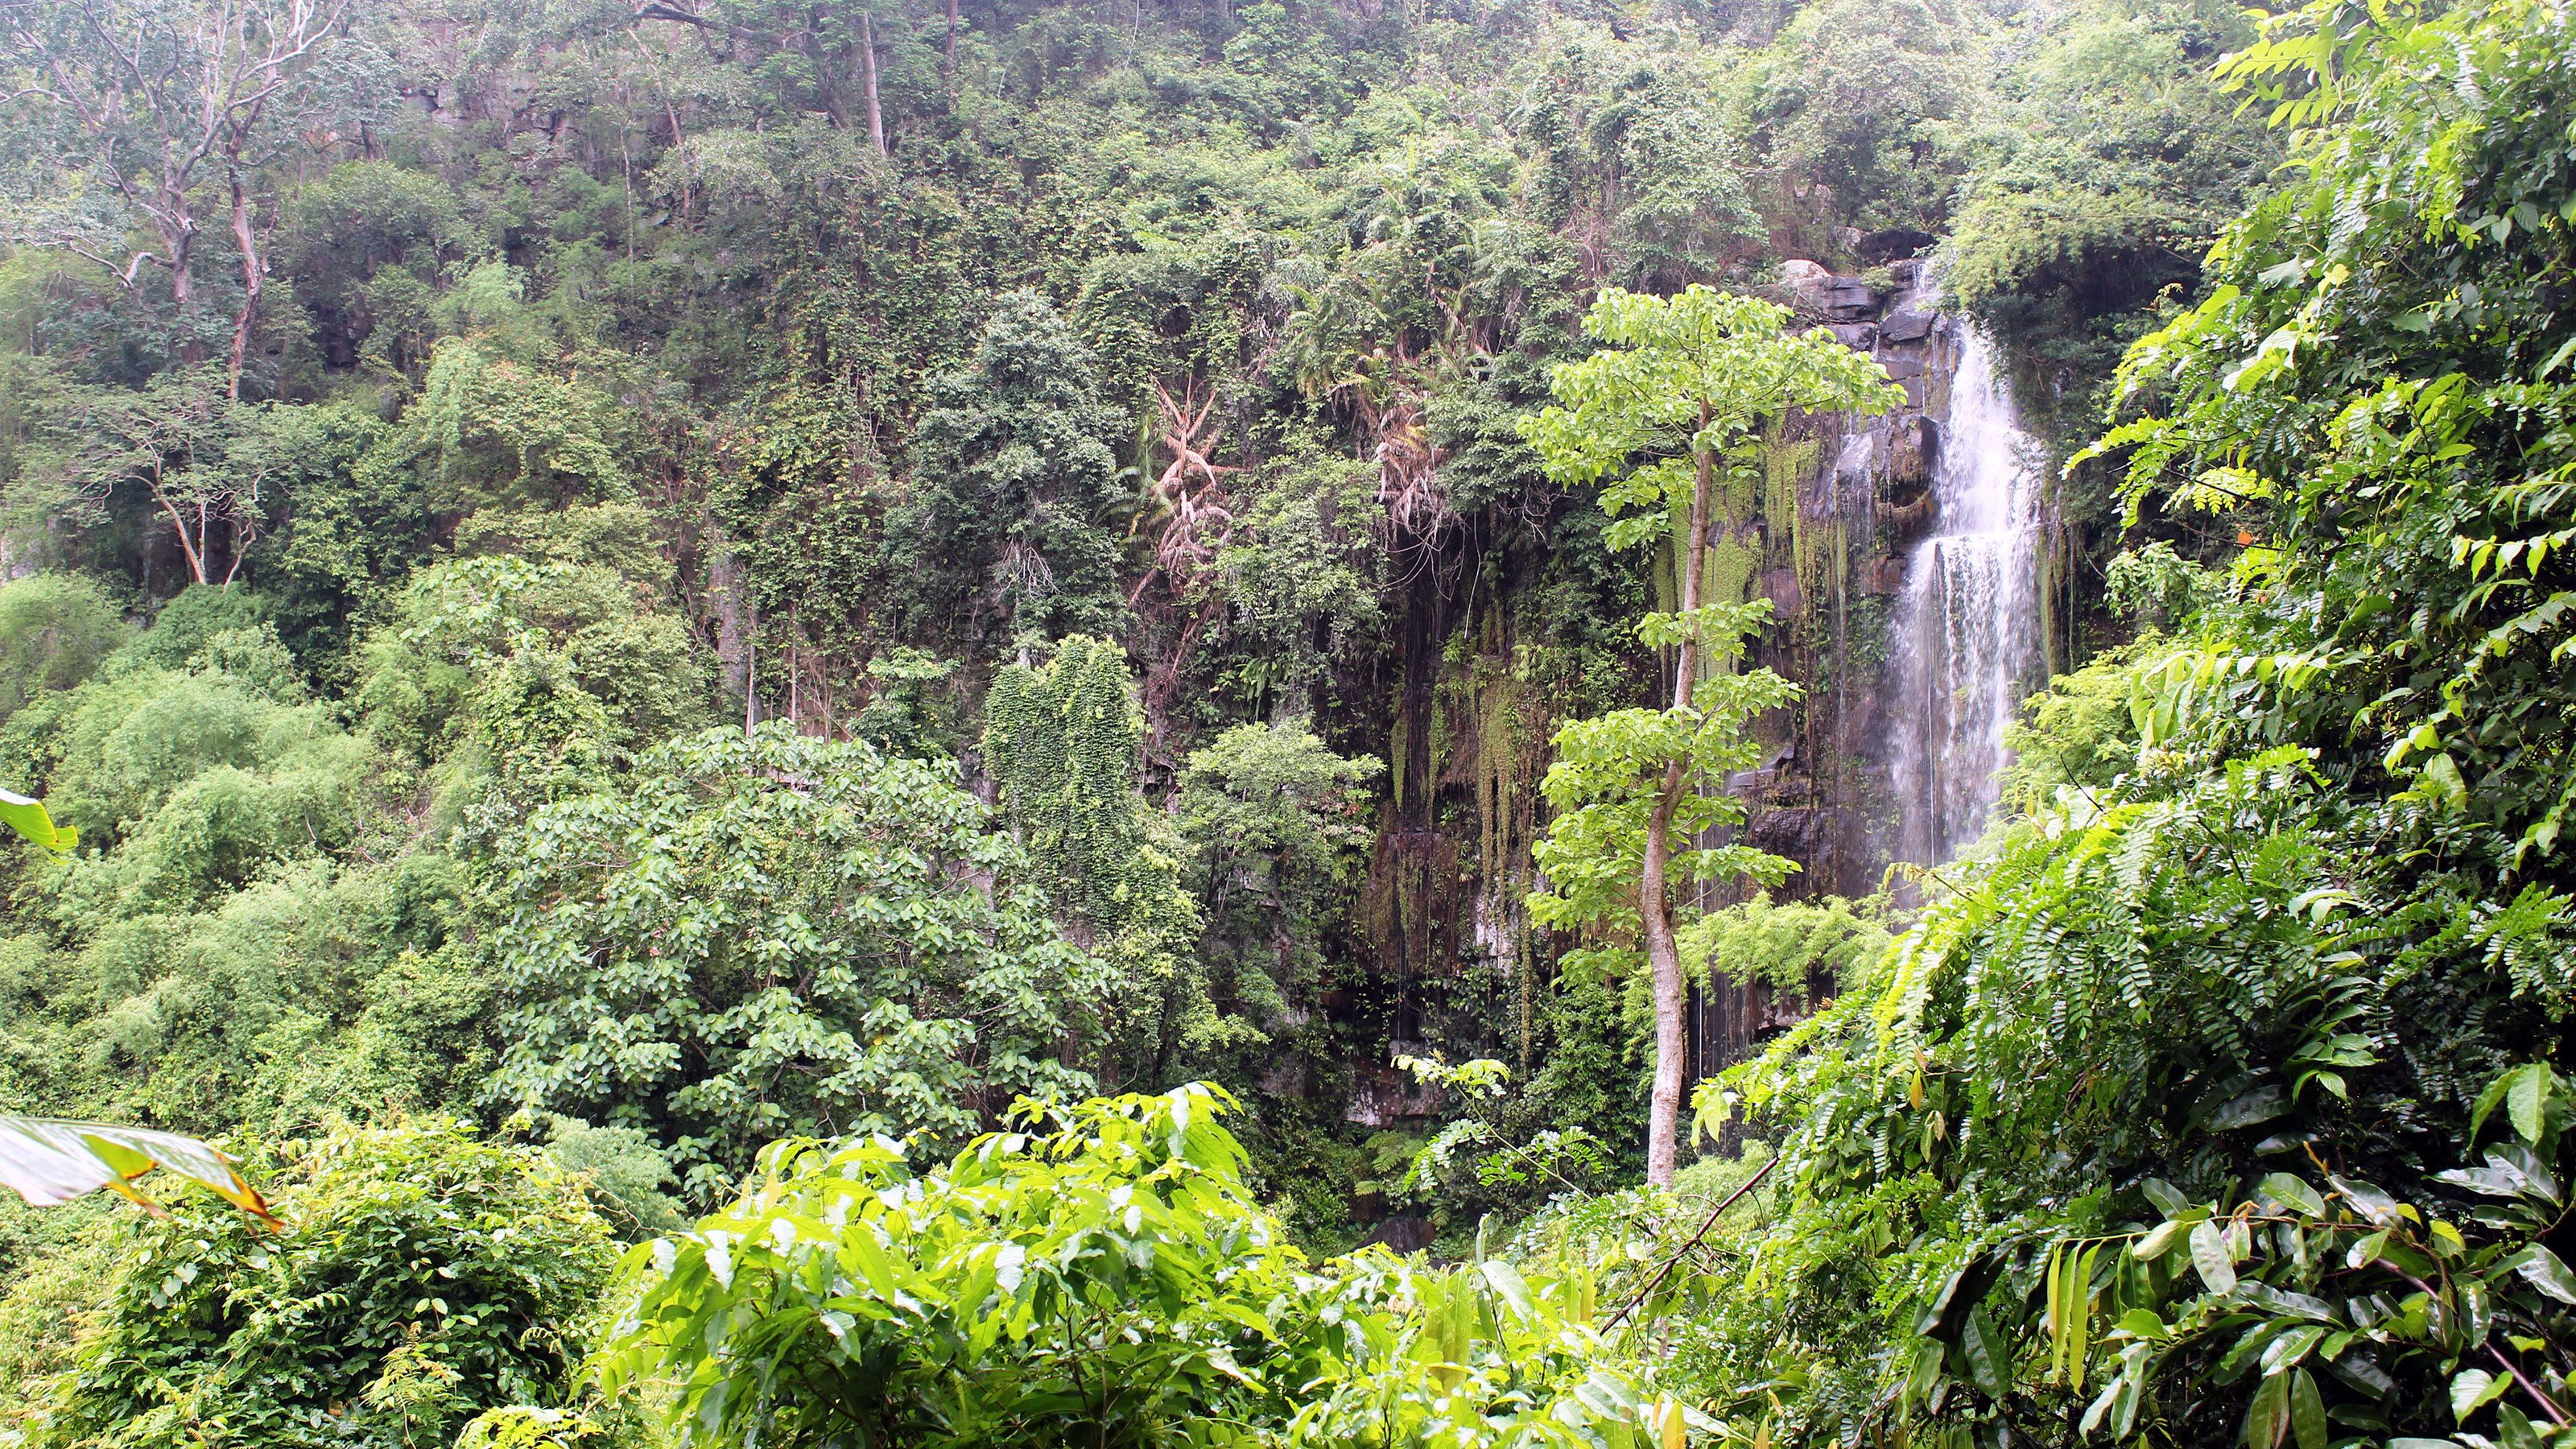 Scenic view of the waterfall and greenery at Kirirom National Park in Phnom Penh